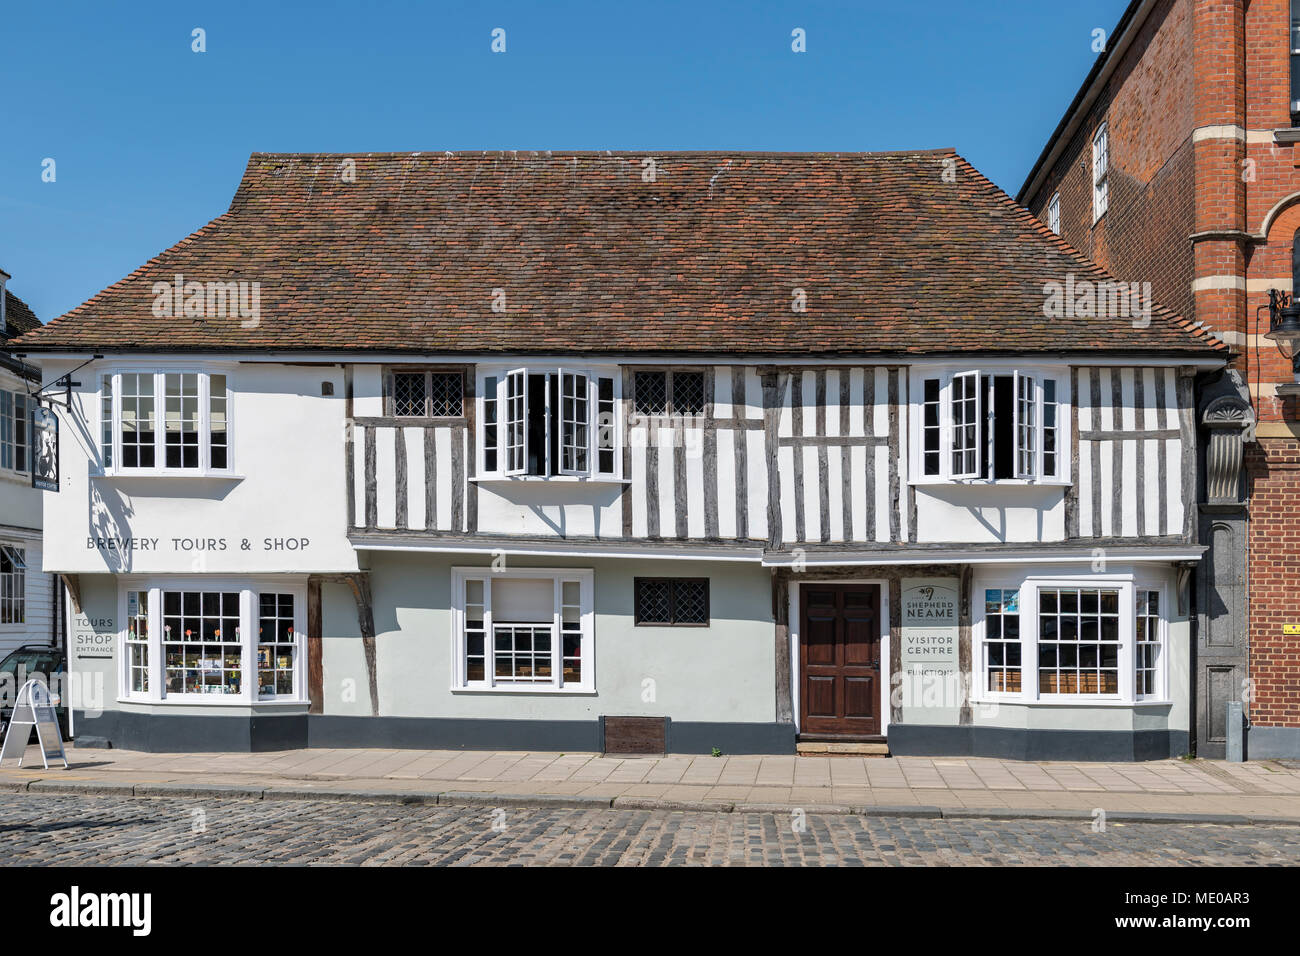 Medieval hall house on Court street, Faversham Kent now the front of the Shepherd Neame brewery visitor centre. - Stock Image